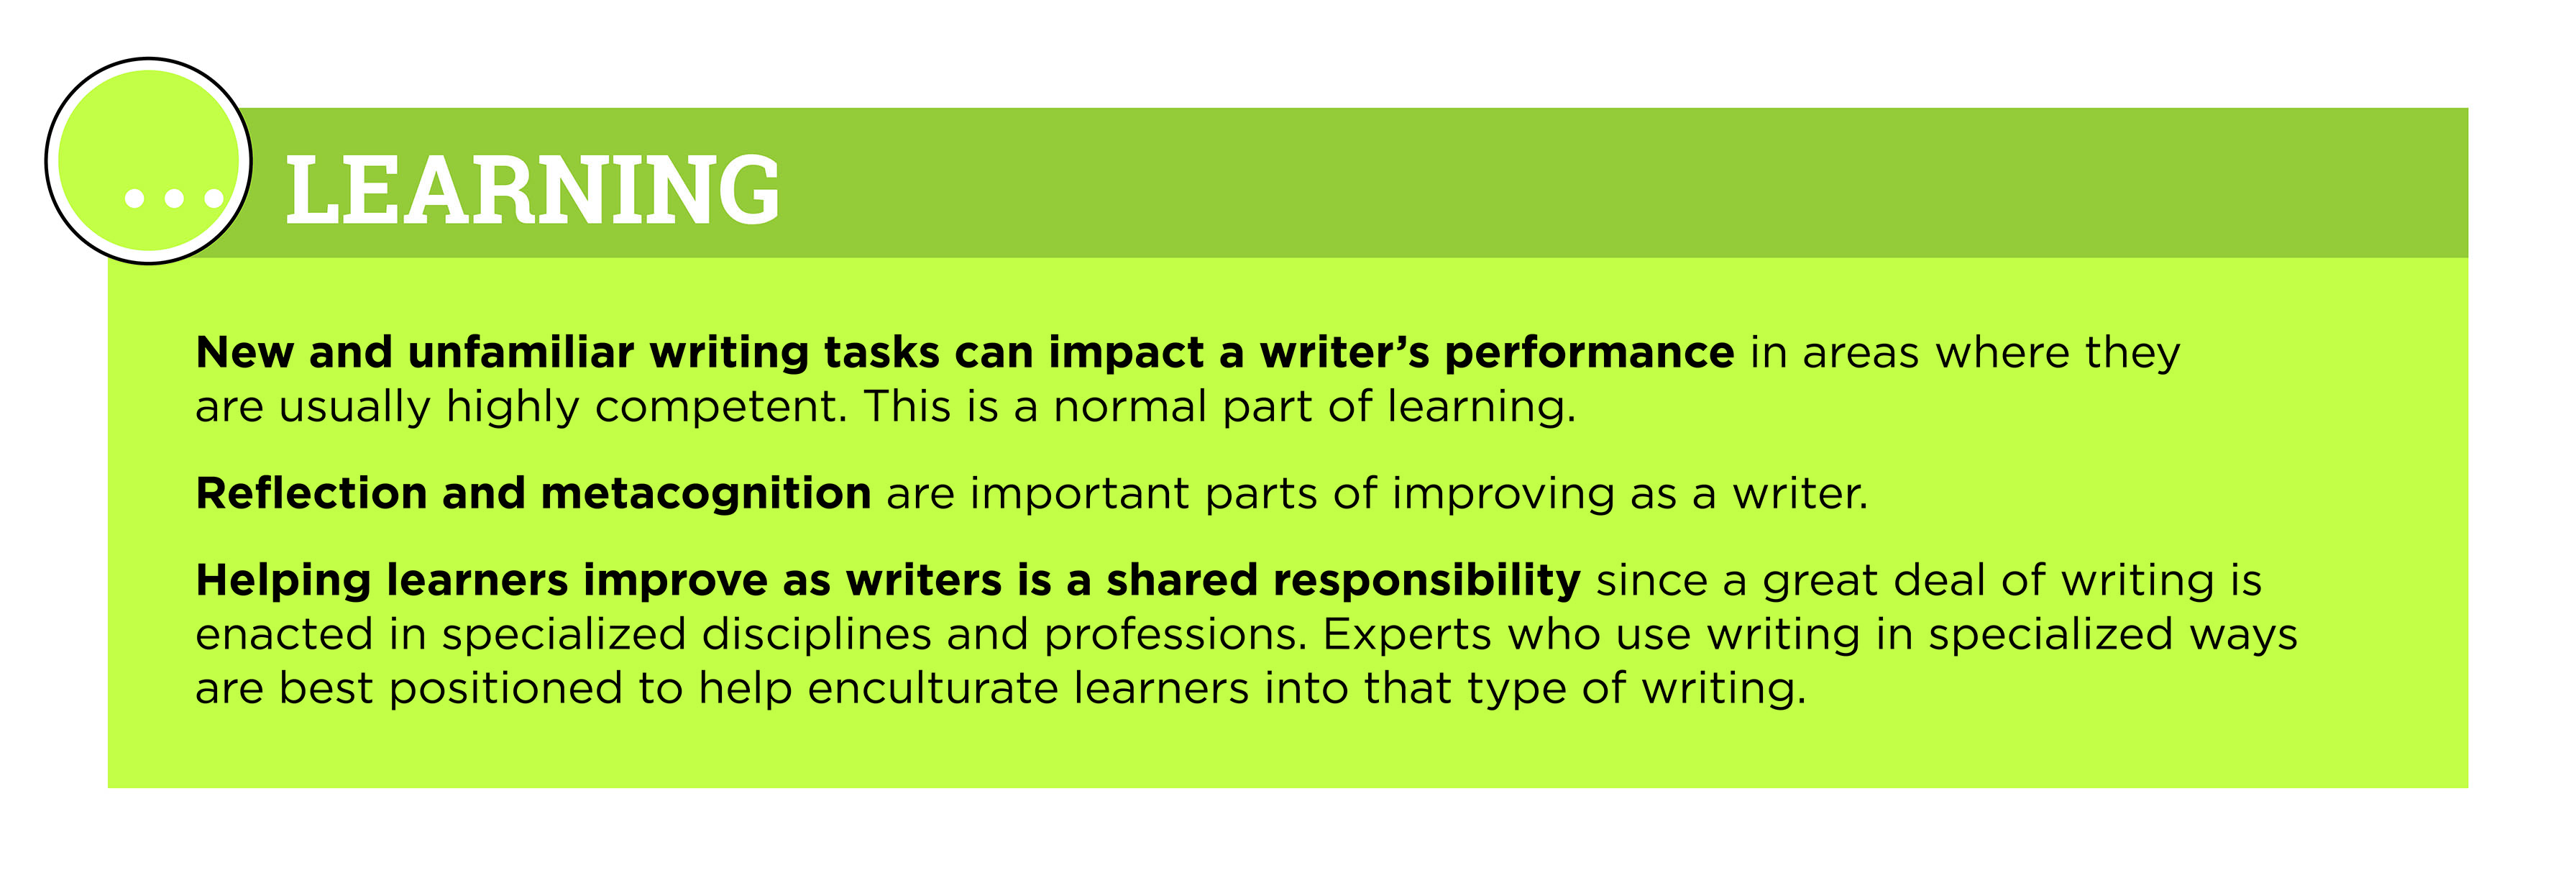 New and unfamiliar writing tasks can impact a writer's performance in areas where they are usually highly competent. This is a normal part of learning. Reflection and metacognition are important parts of improving as a writer. Helping learners improve as writers is a shared responsibility since a great deal of writing is enacted in specialized disciplines and professions. Experts who use writing in specialized ways are best positioned to help enculturate learners into that type of writing.